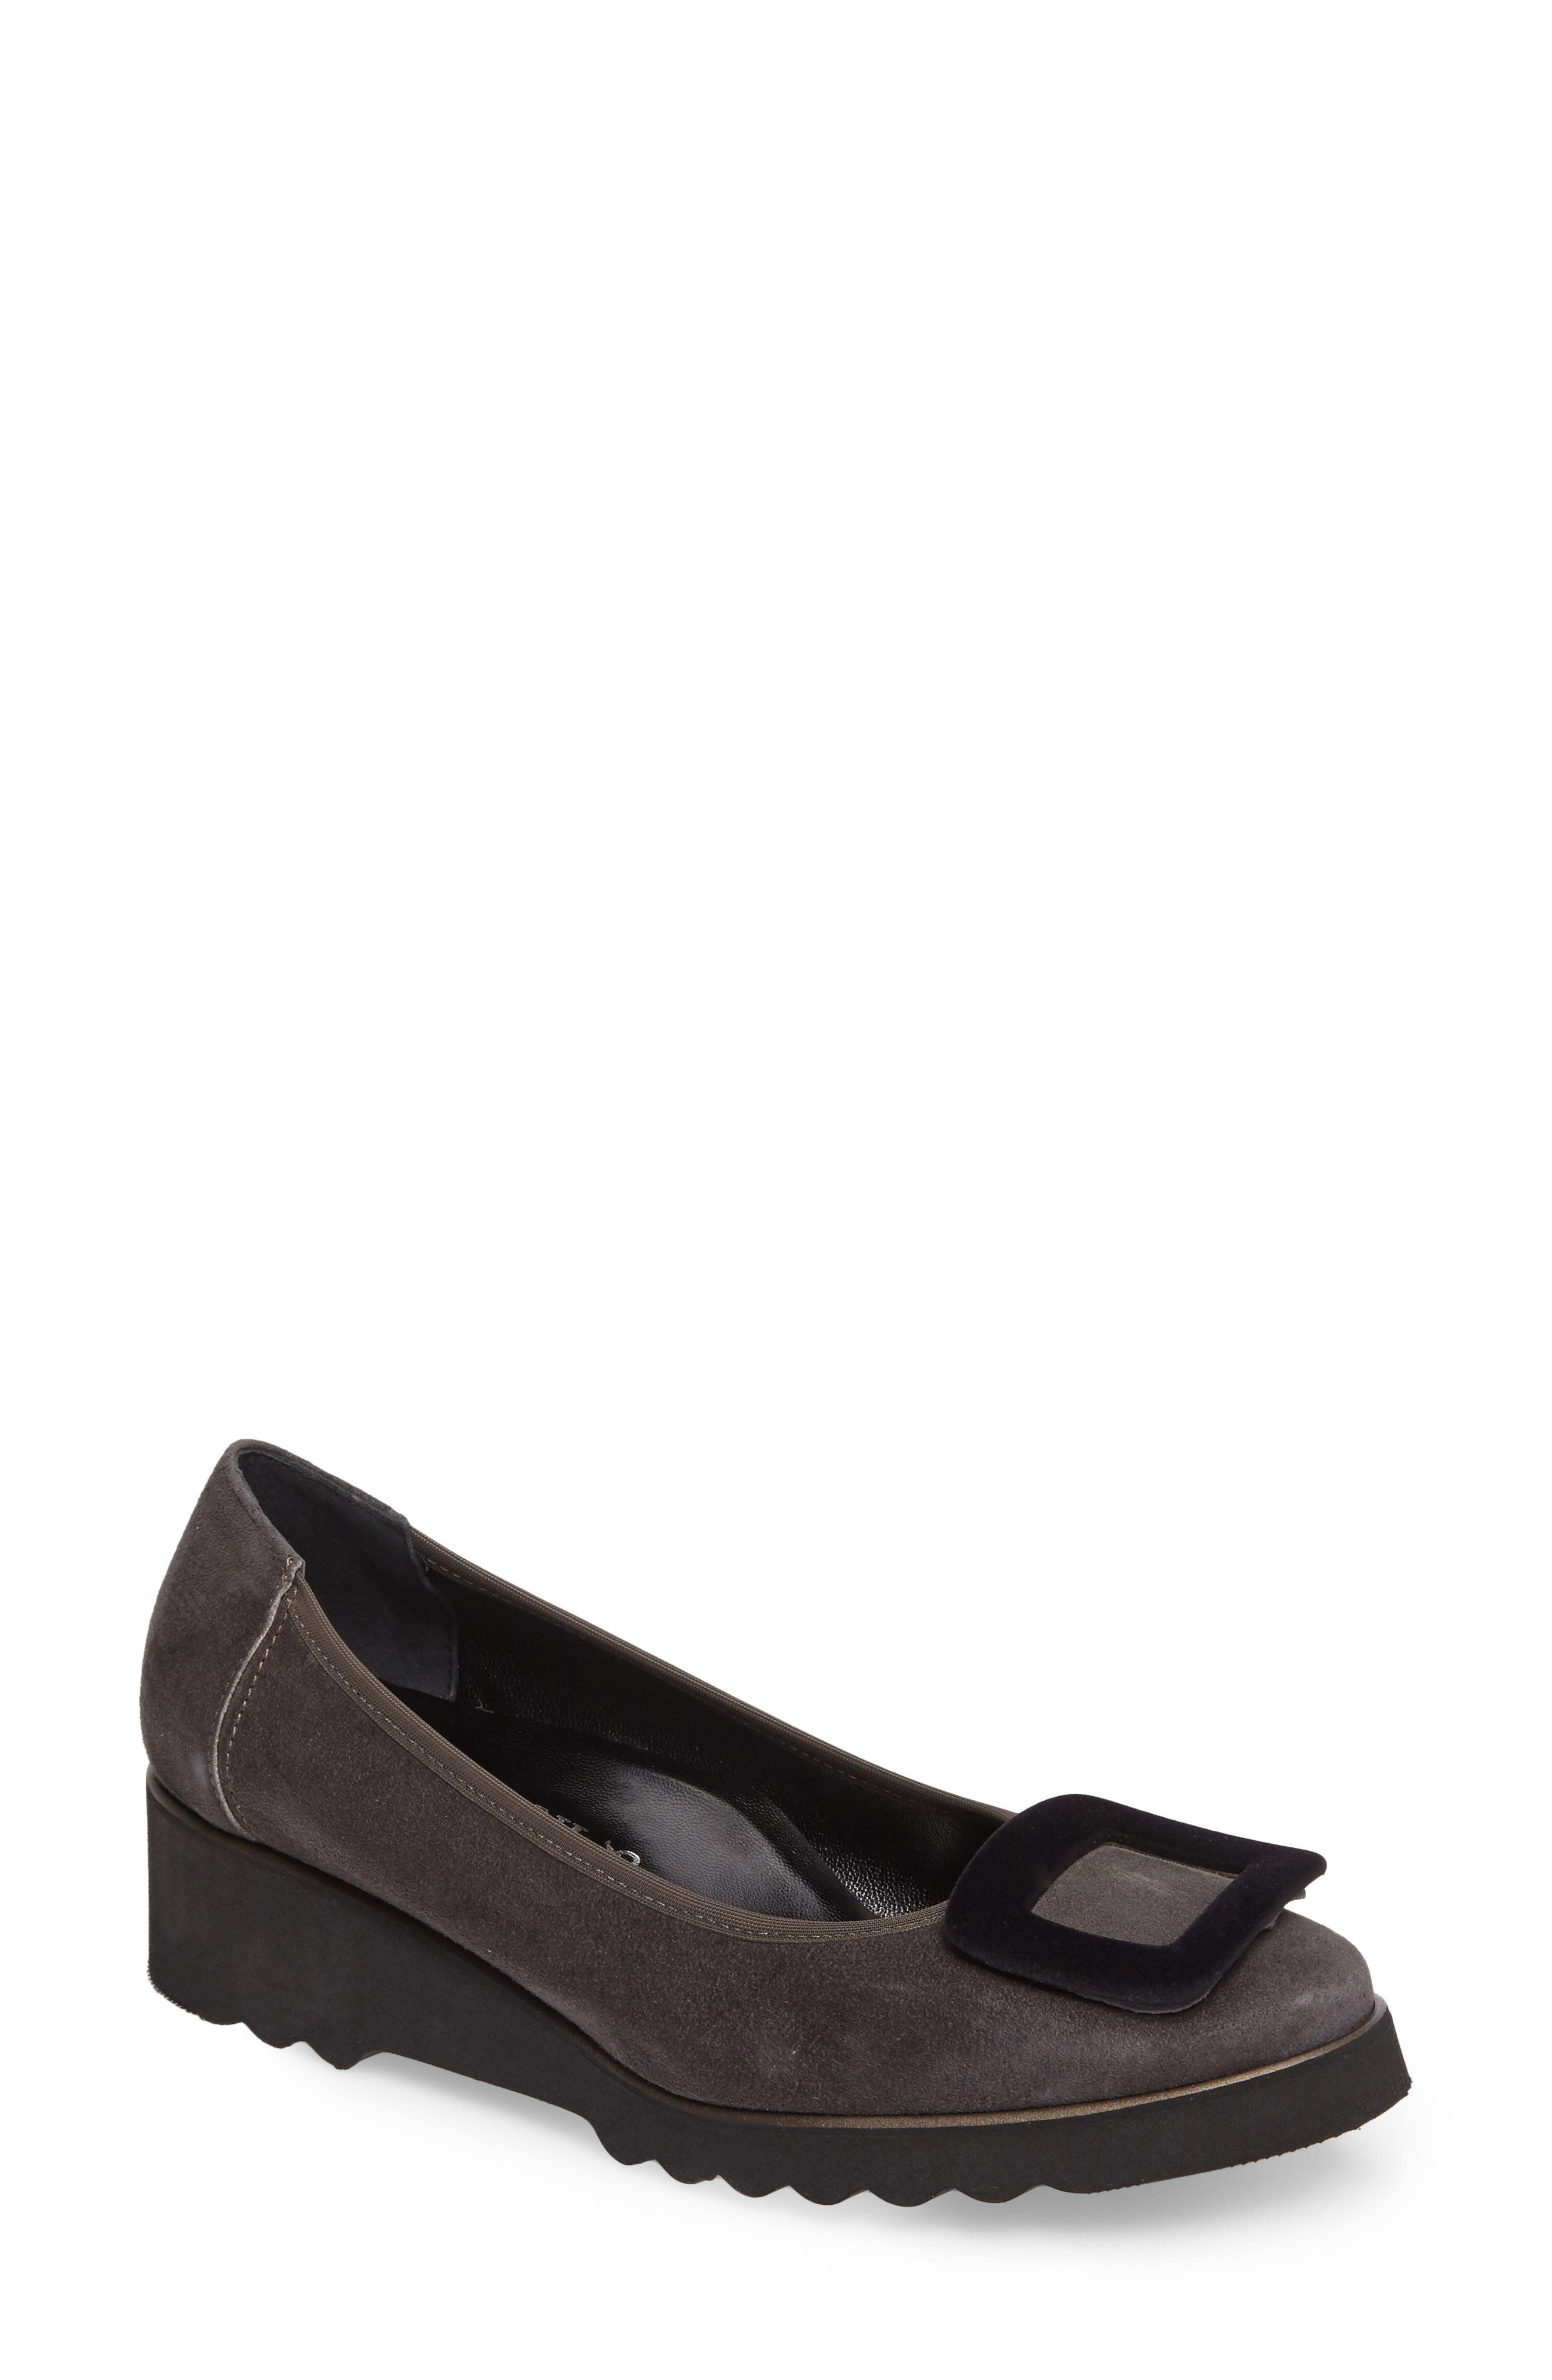 Aggie Wedge,                         Main,                         color, 030